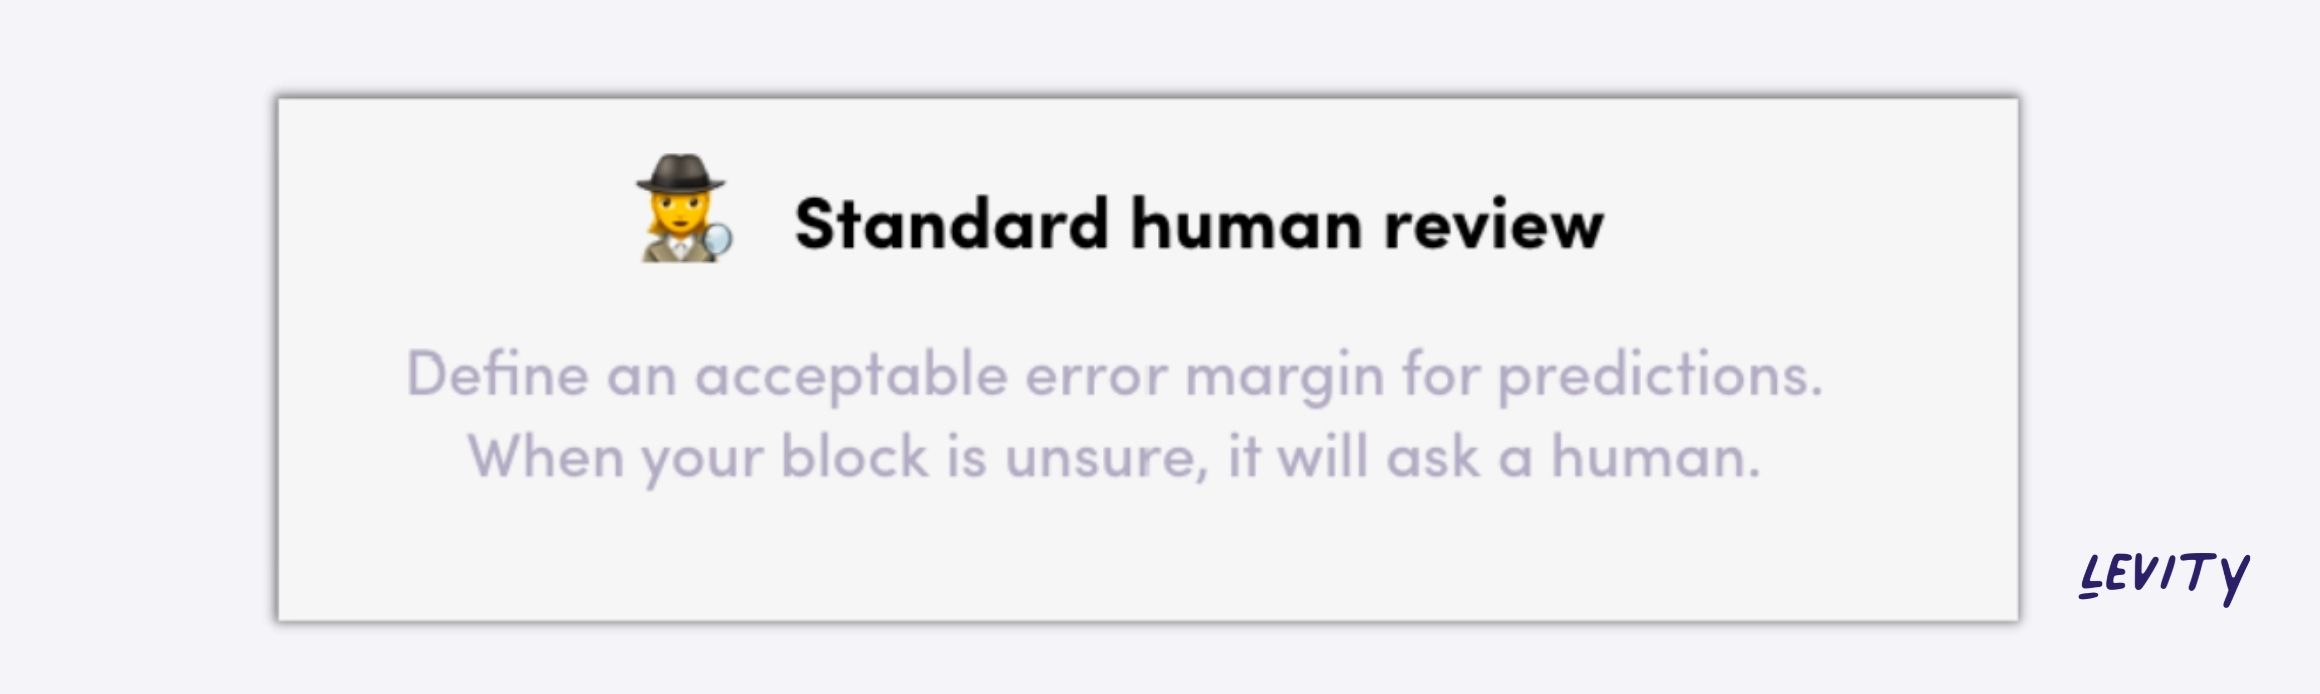 Define when an AI should ask for human review